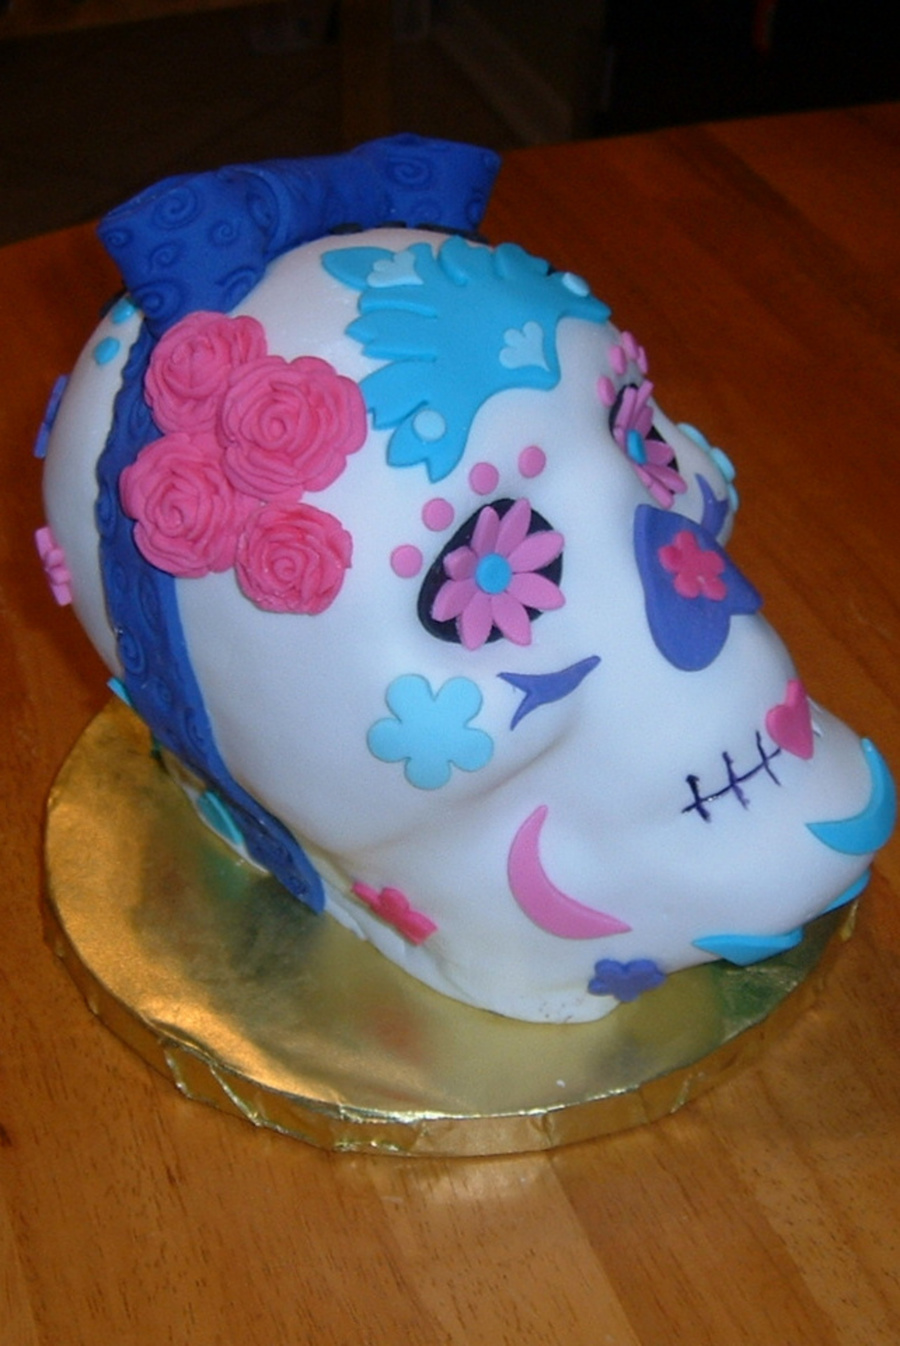 Day Of The Dead Cake From The Large Discontinued Wilton 3d